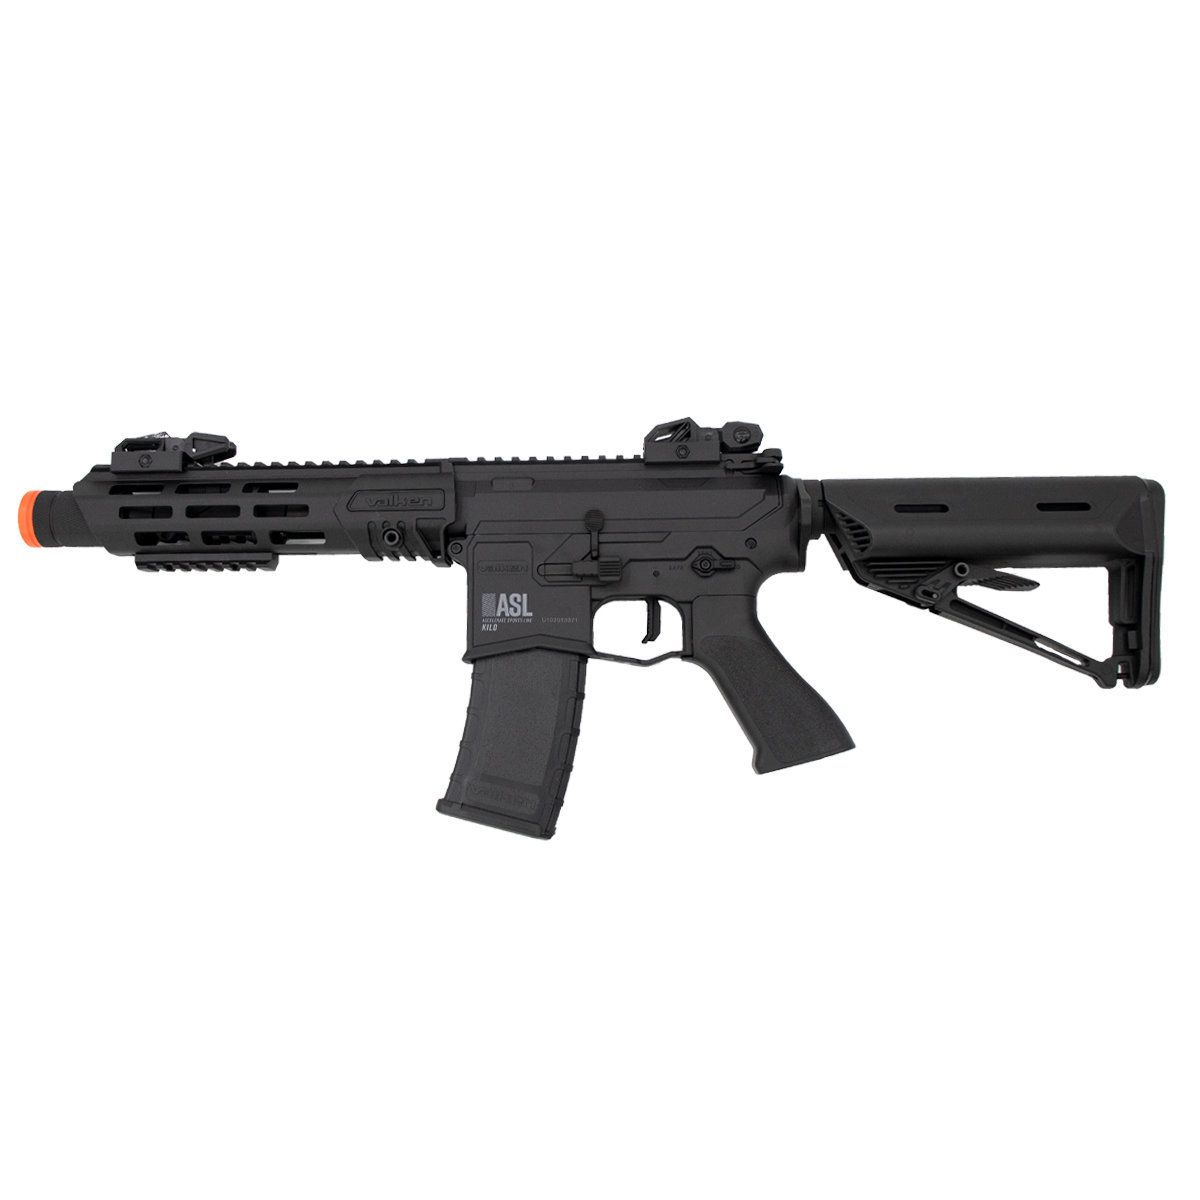 View larger image of Valken ASL Kilo AEG Rifle